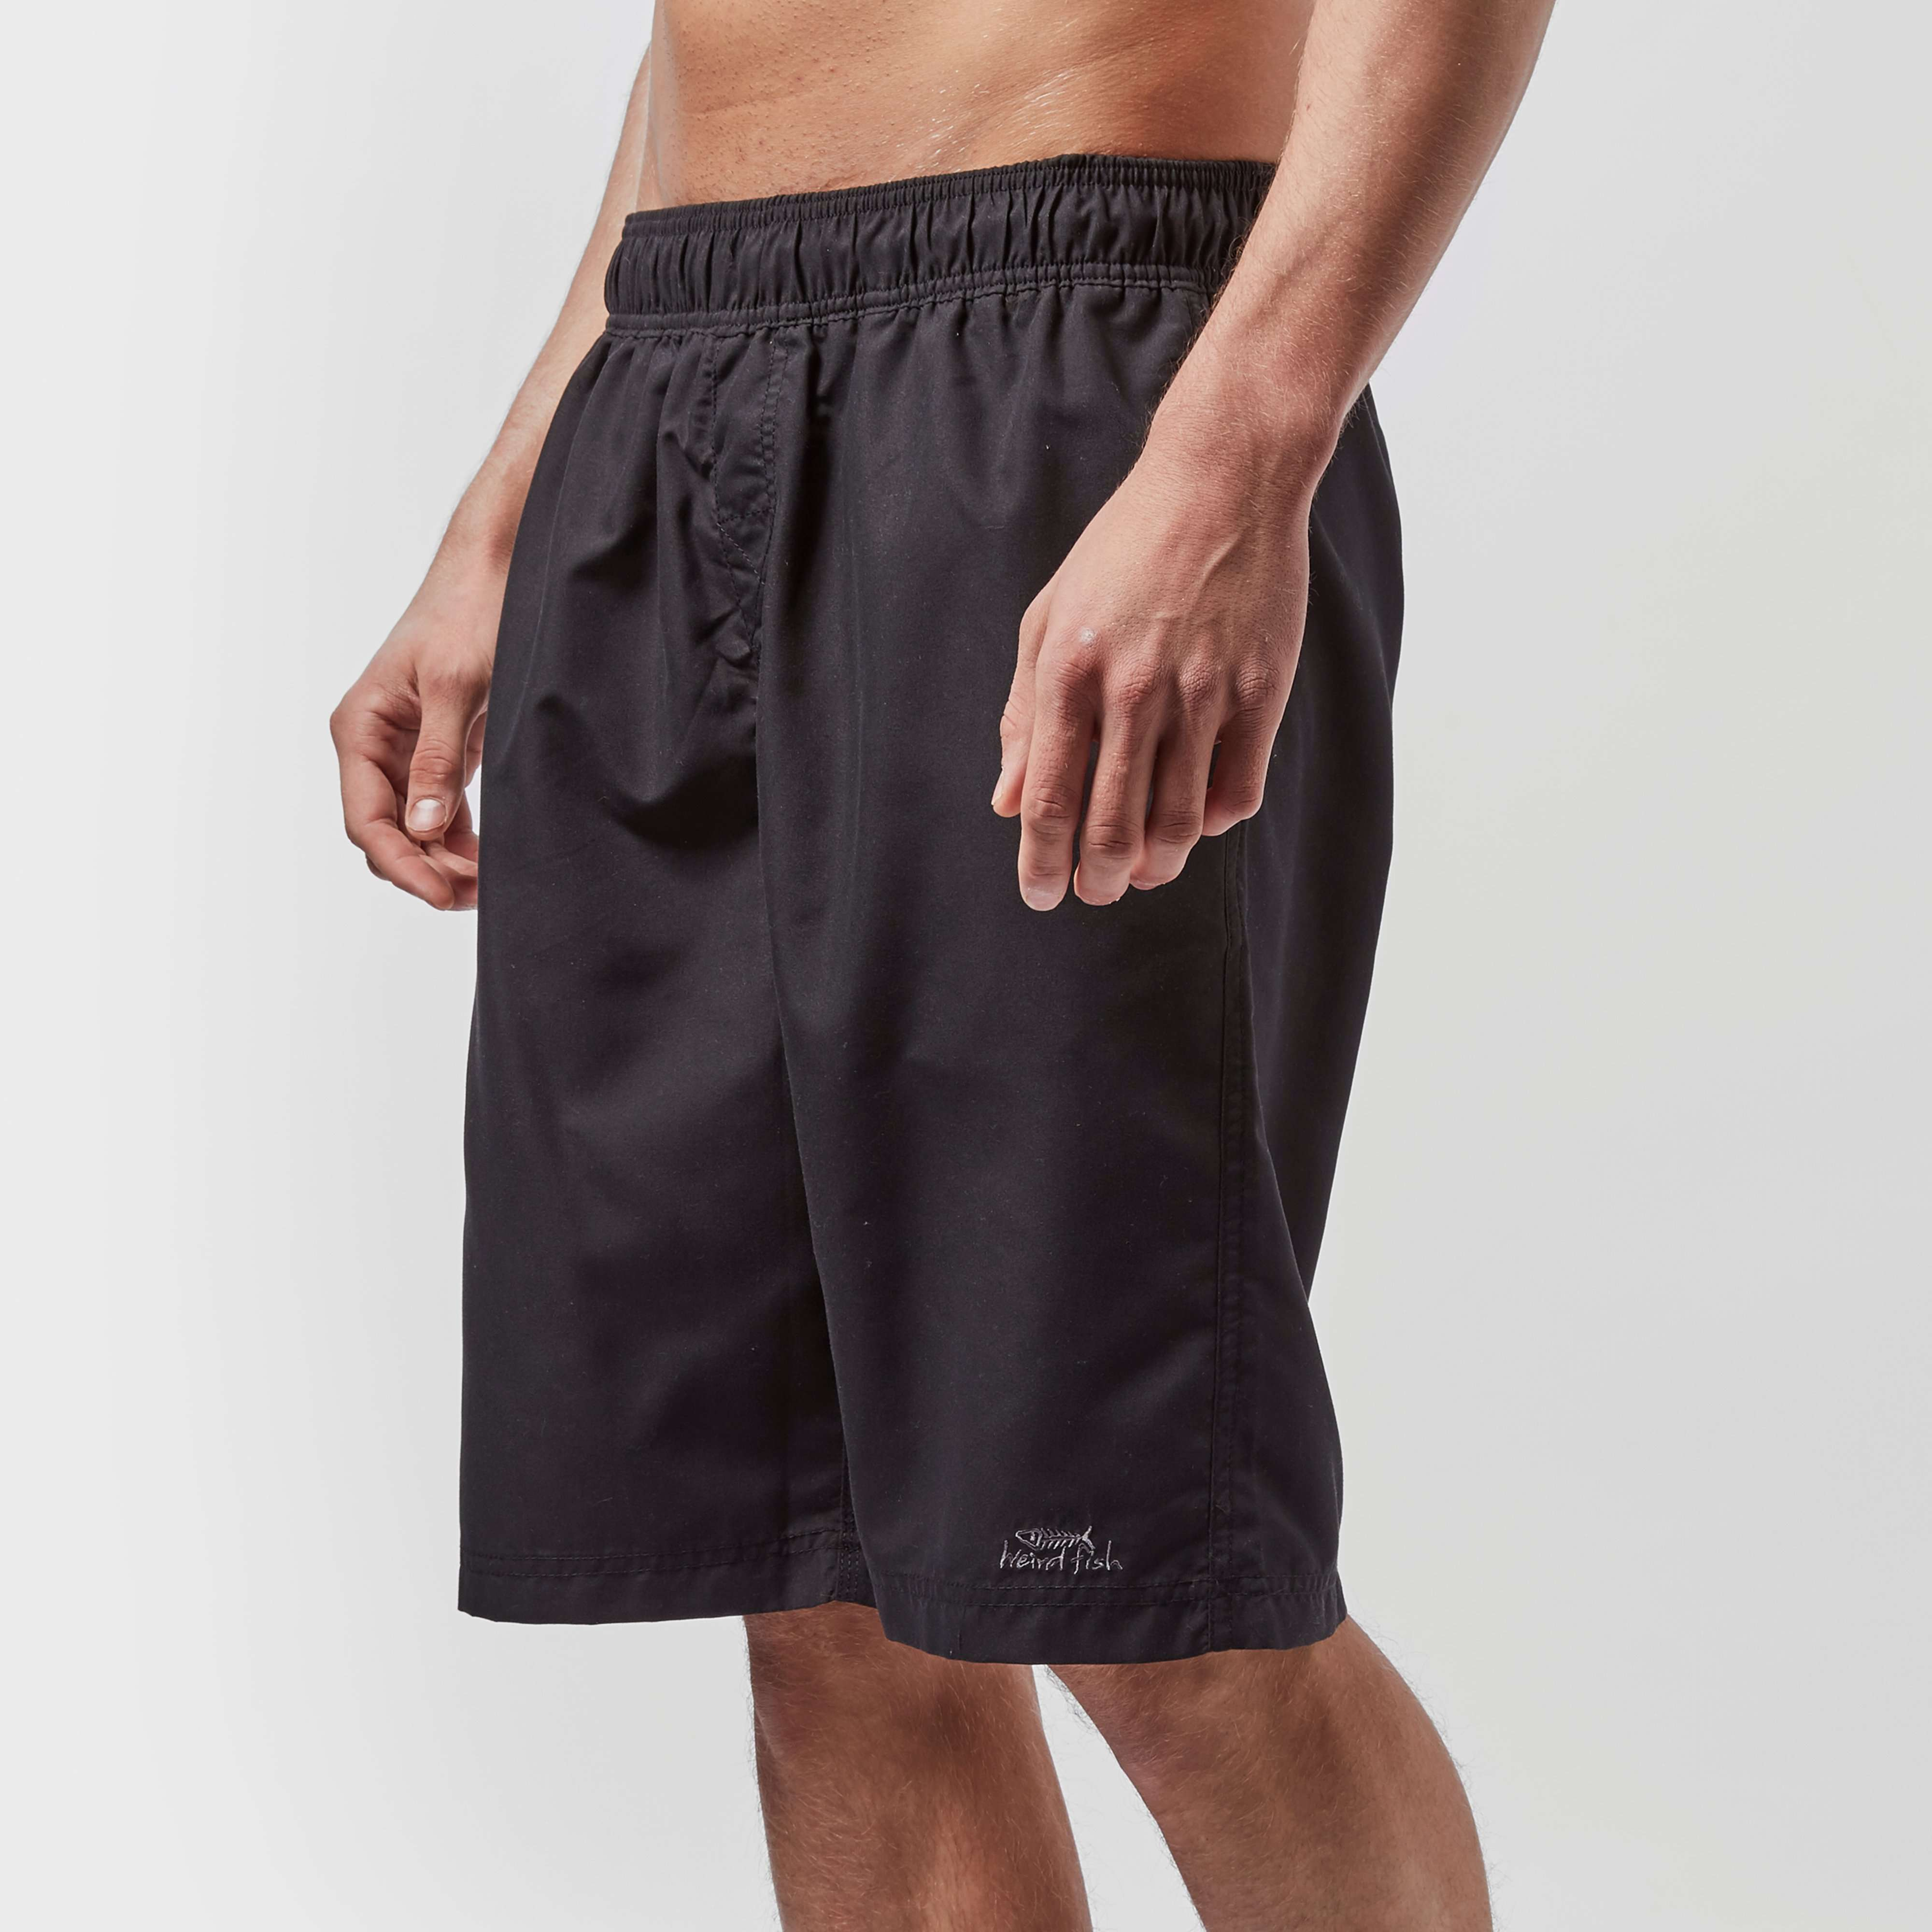 WEIRD FISH Men's Swimshorts